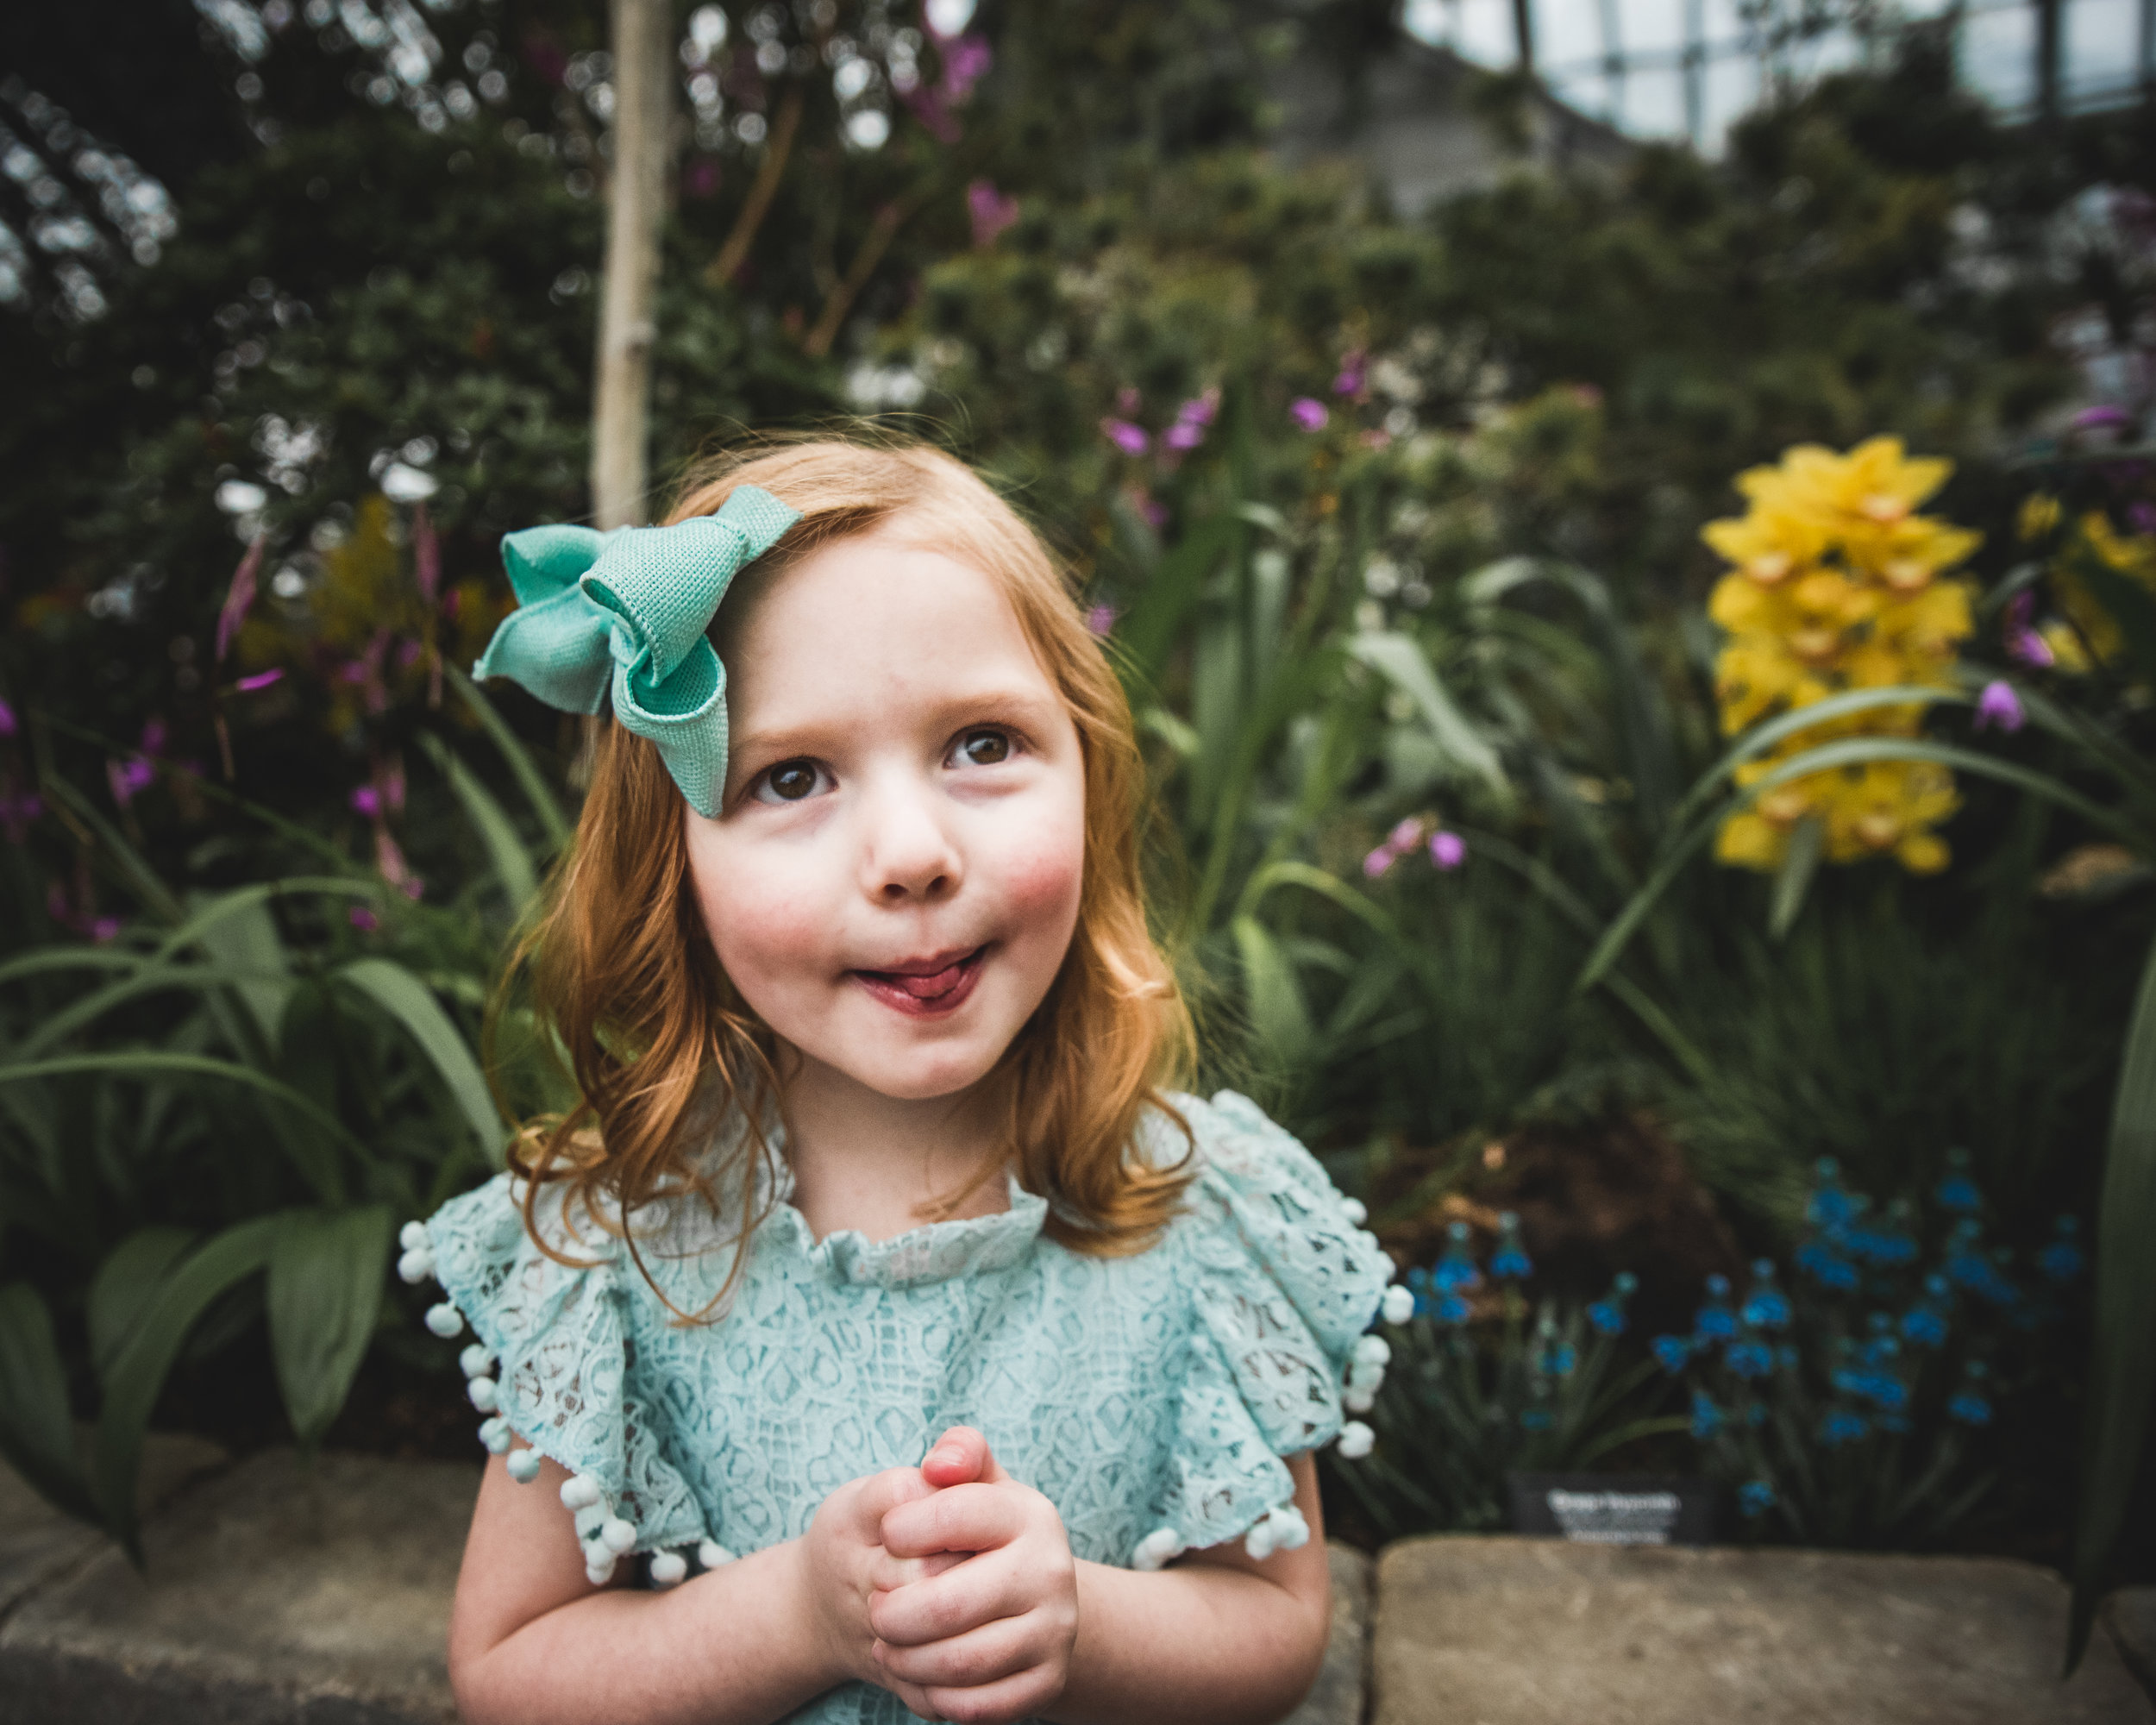 Chicago Family Photography Session at the  Garfield Conservatory